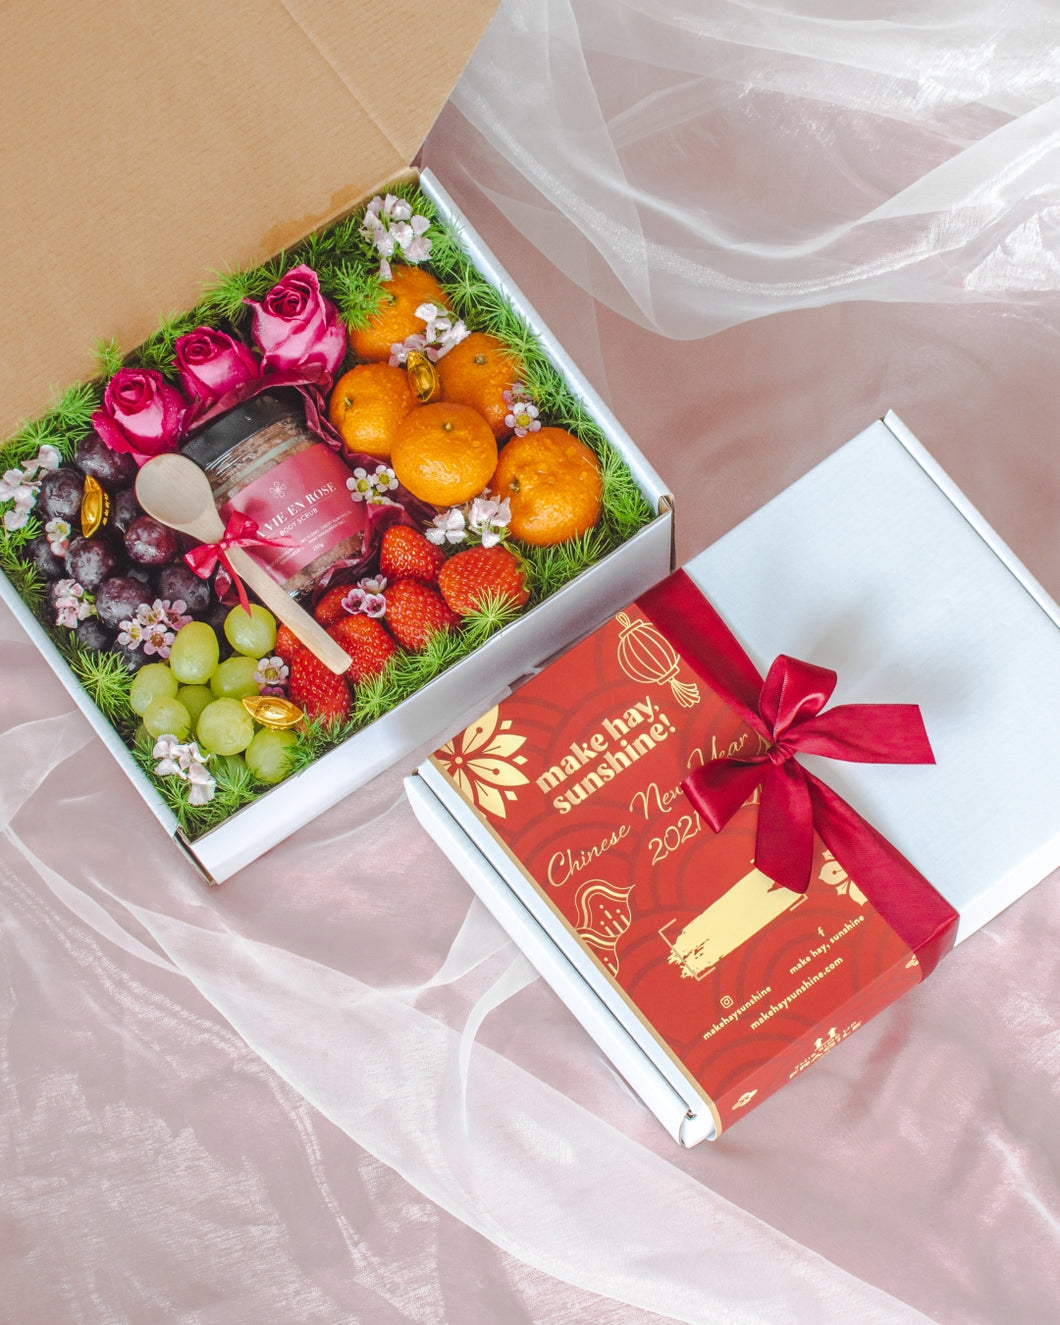 A Rose or Two (CNY Edition) - A Body Scrub & Fruit Gift Box | make hay, sunshine!.